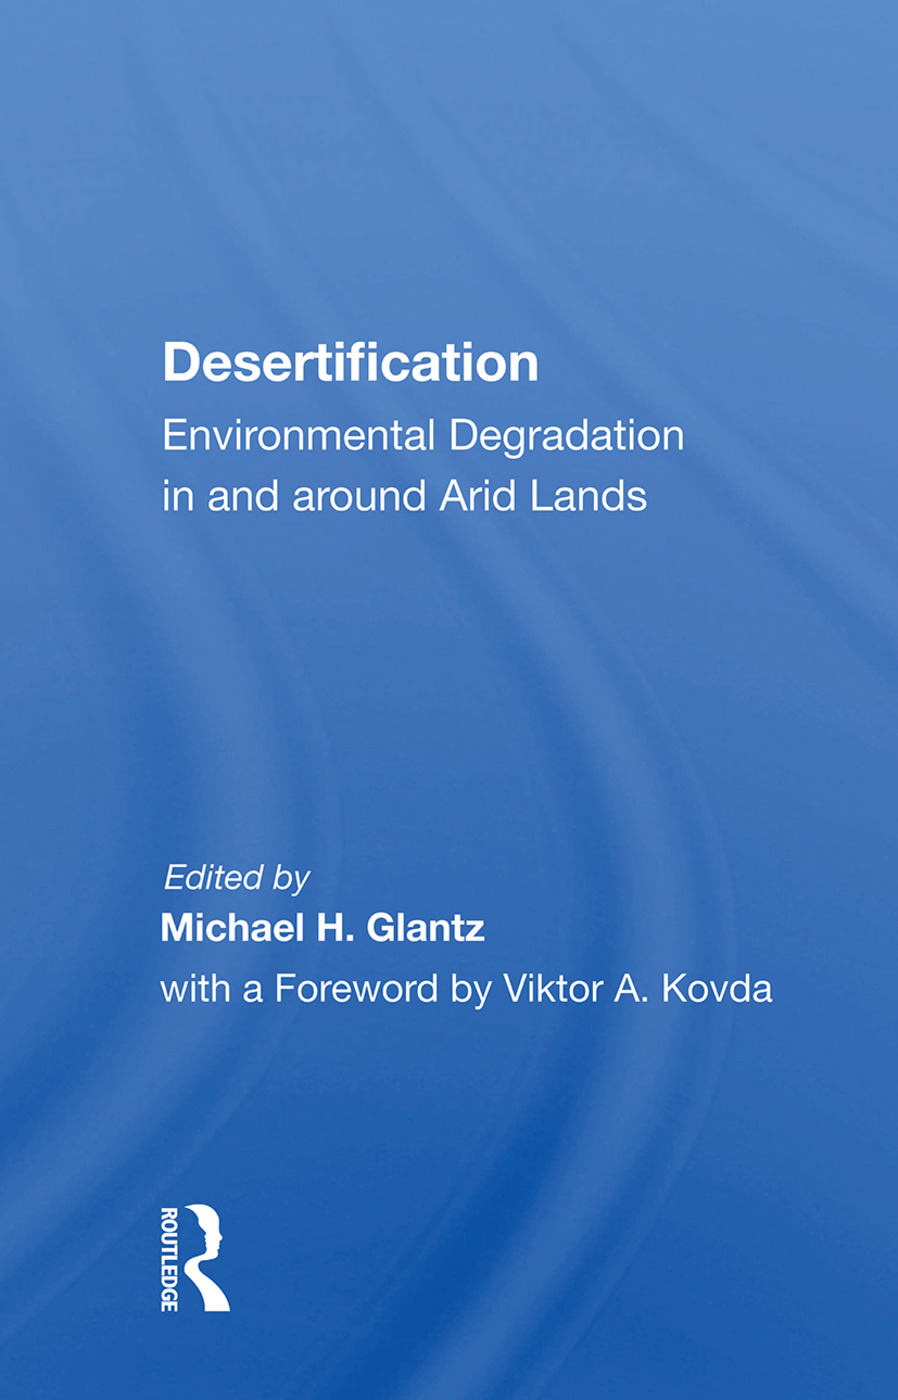 The U.N. and Desertification: Dealing with a Global Problem